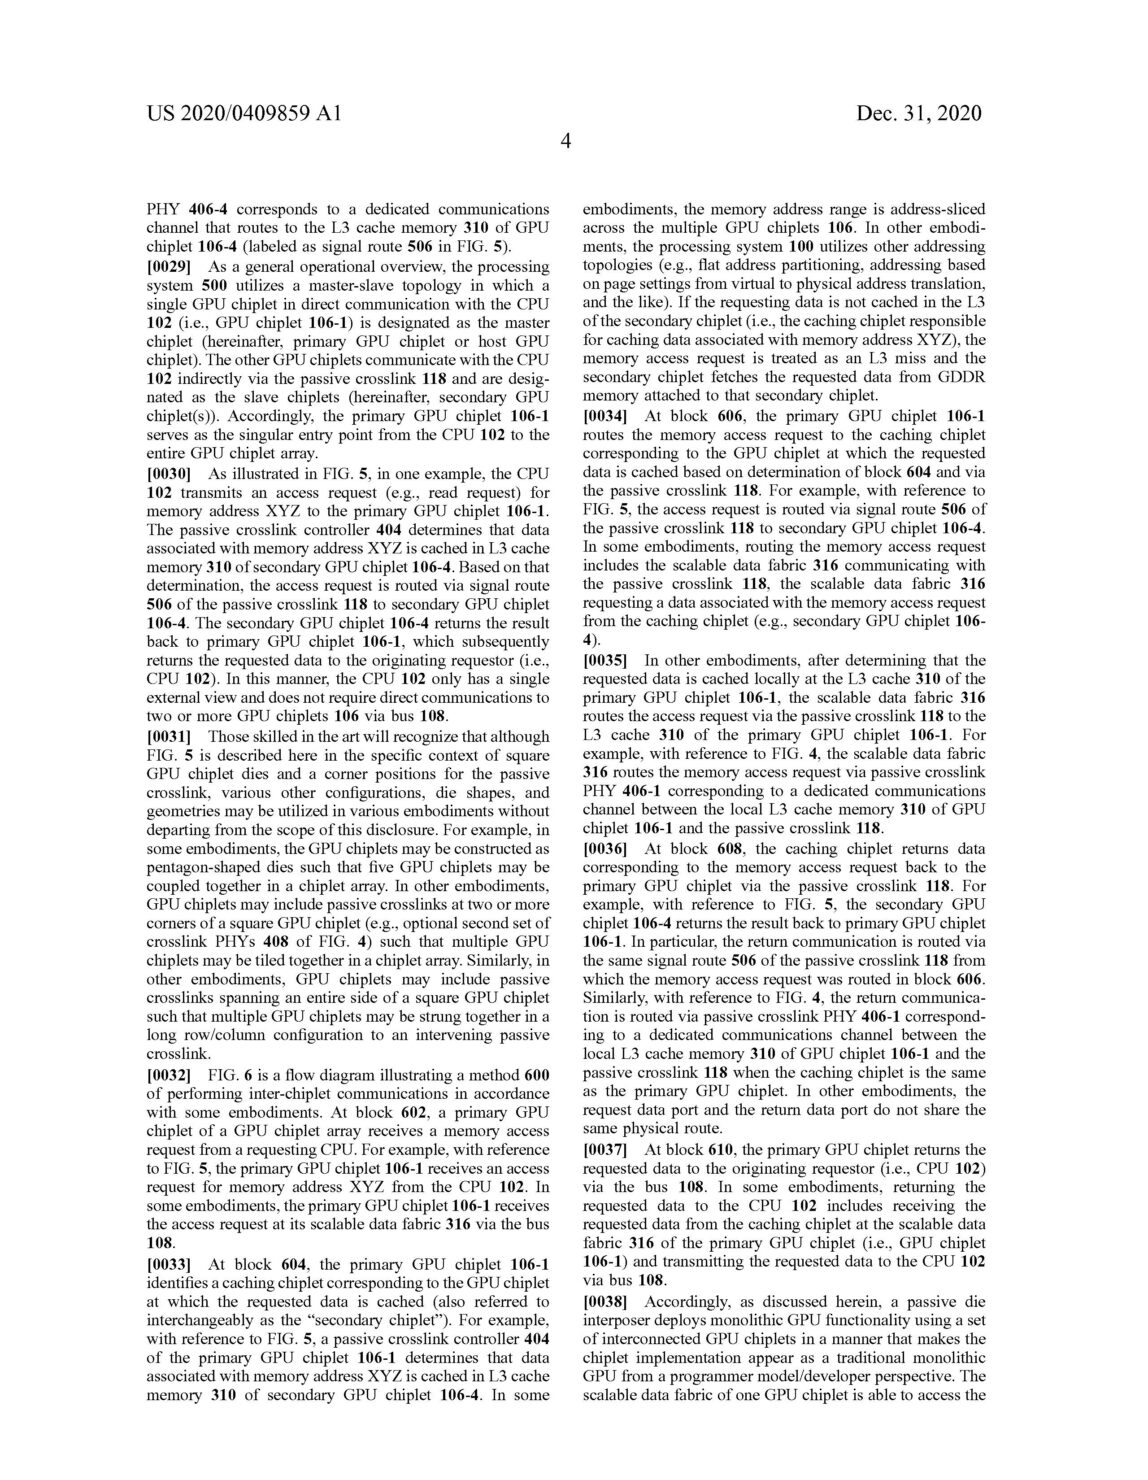 us20200409859a1-page-011